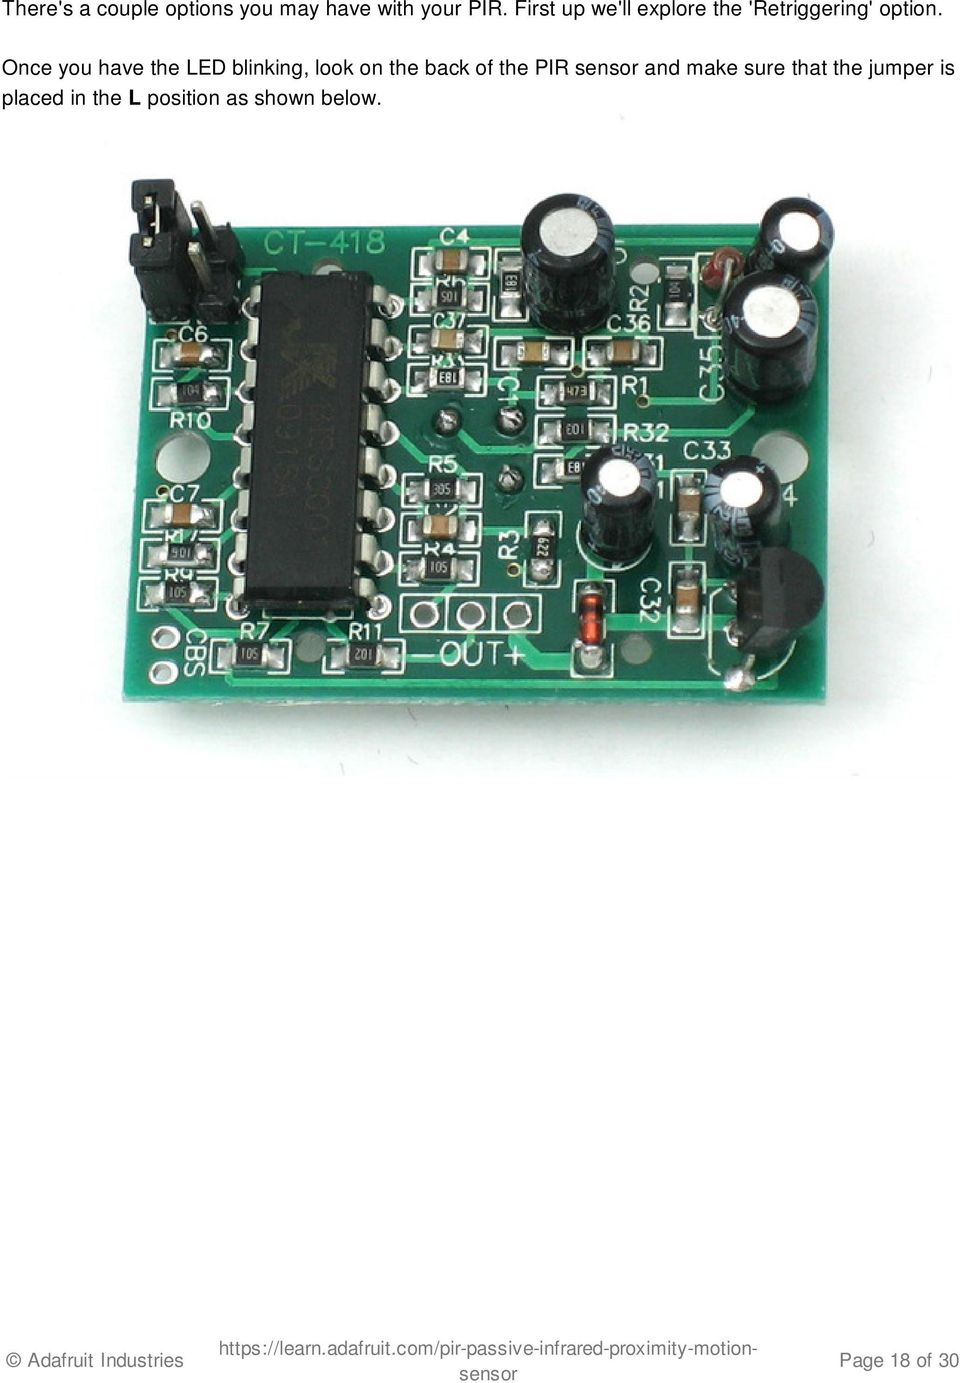 Pir Motion Sensor Created By Lady Ada Last Updated On 3258 Pm Microcontroller Based Diy Project For Power Saving Using Once You Have The Led Blinking Look Back Of